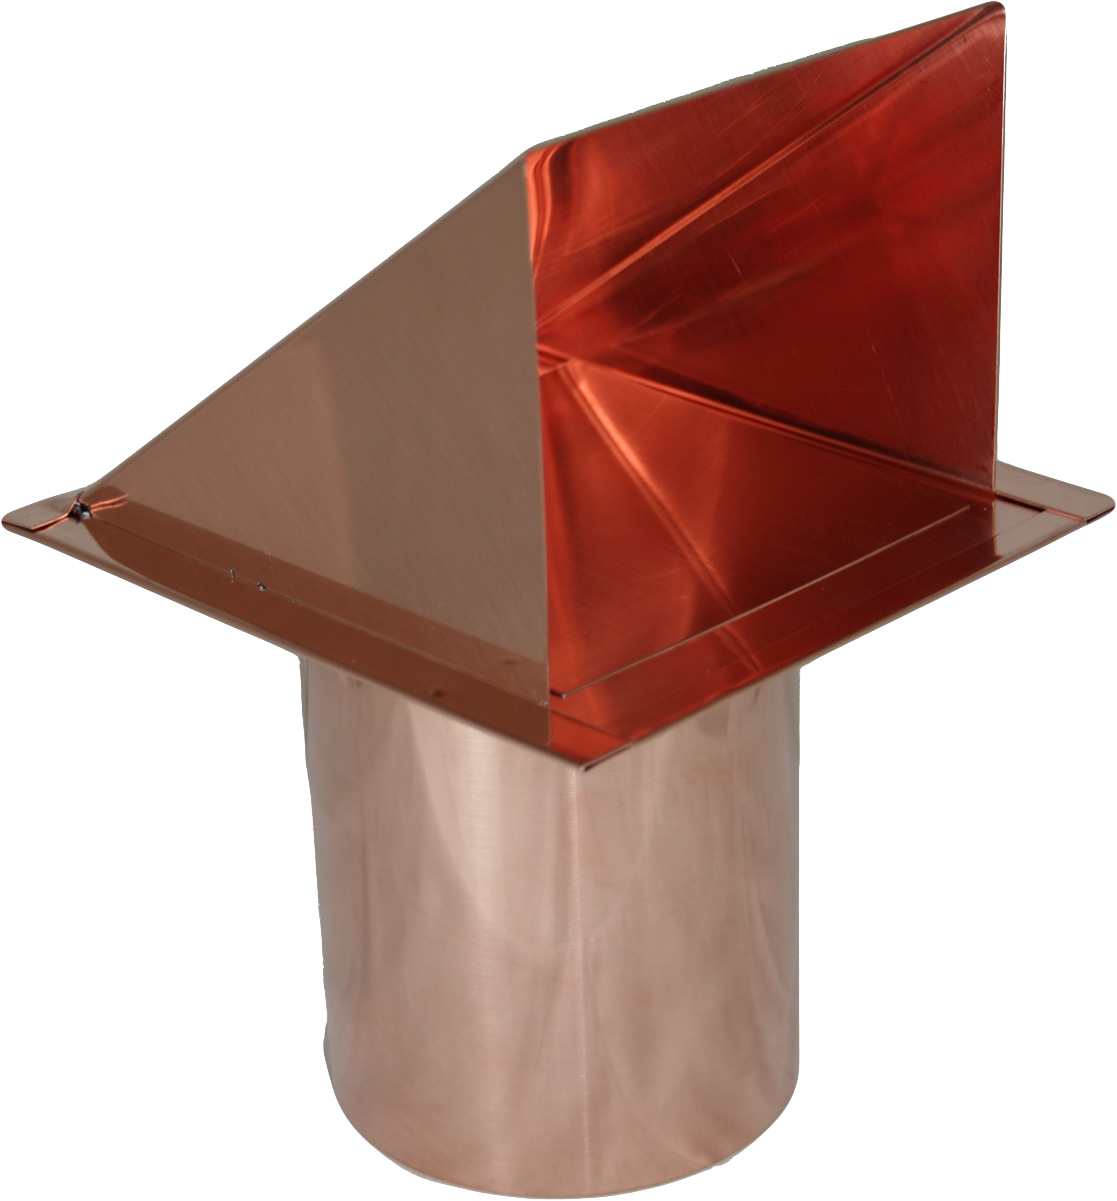 copper 4 inch dryer vent cap with damper